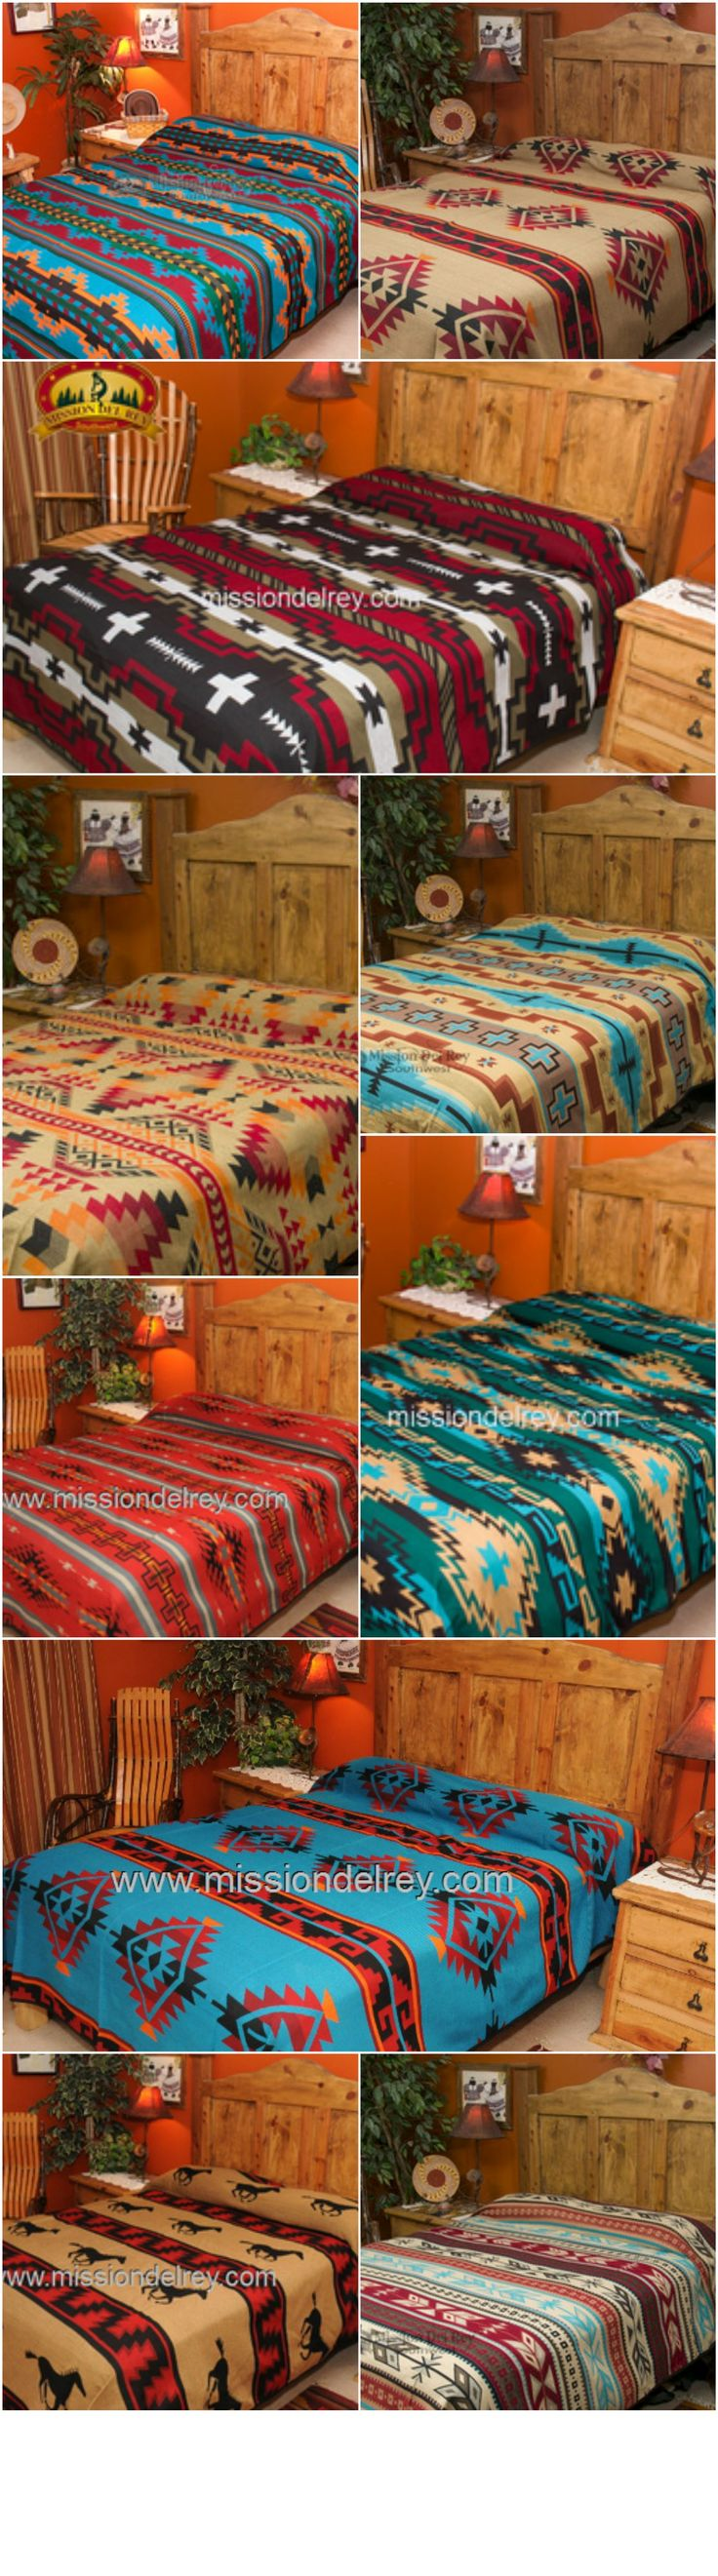 Western bedding for girls - Southwest Decor Bedspread Jemez Pattern King